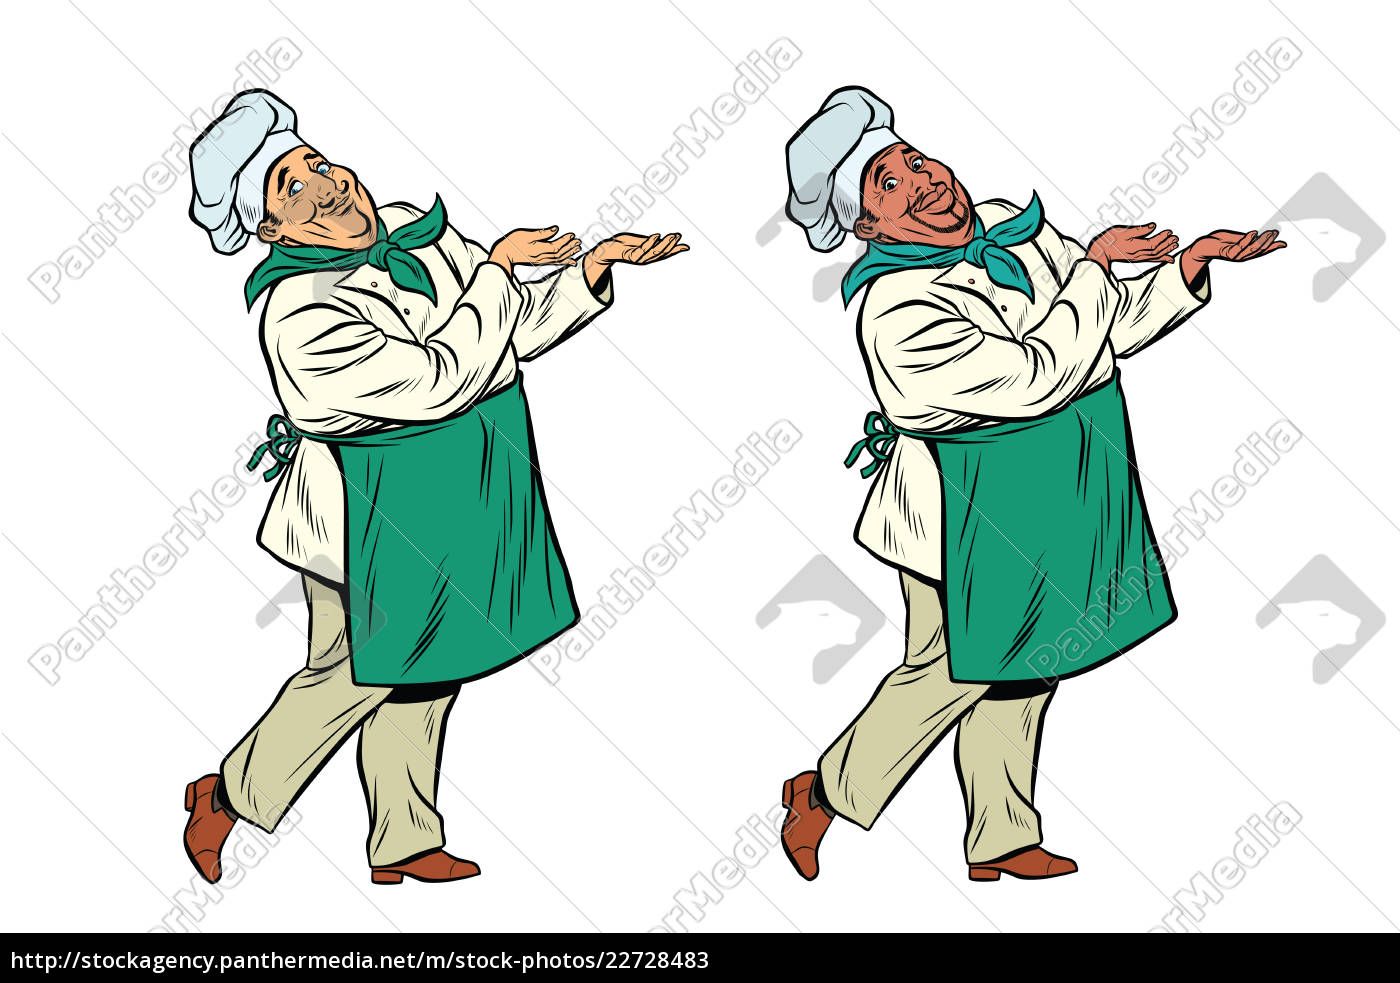 african, and, caucasian, chef, holding, hand - 22728483